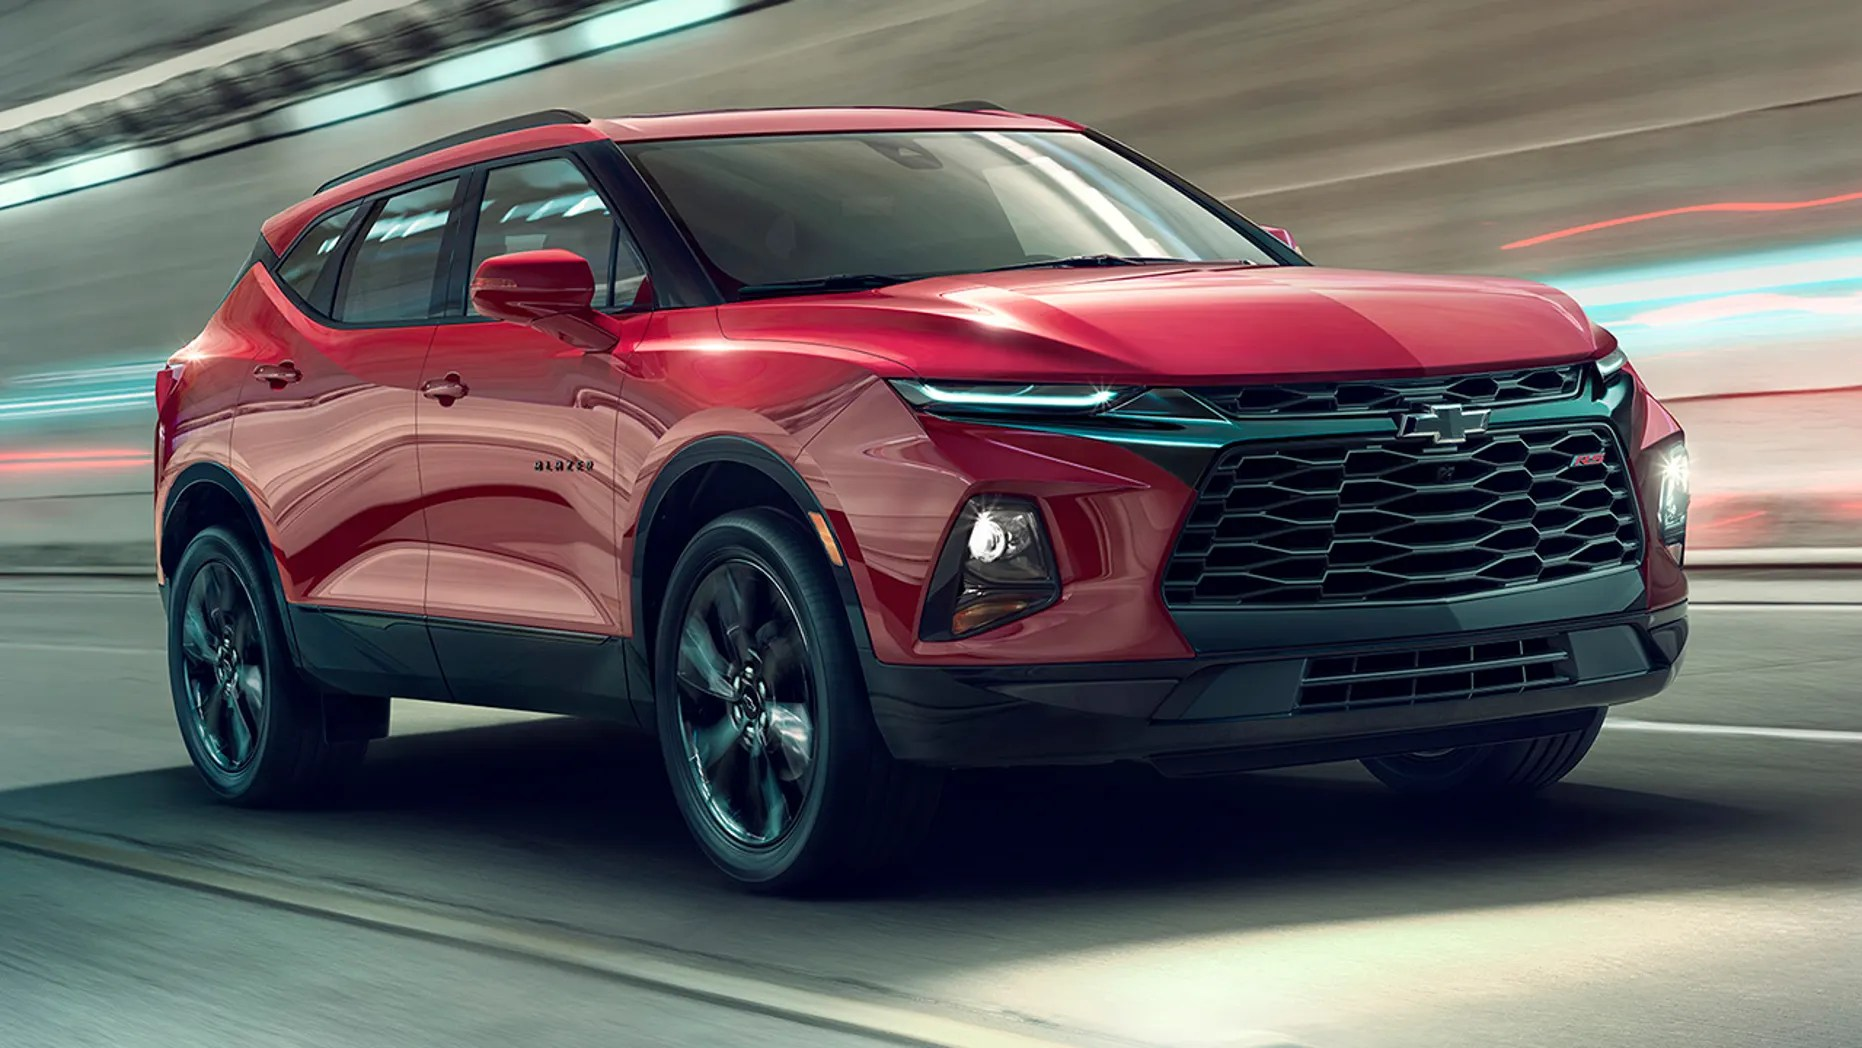 medium resolution of 2019 chevrolet blazer rs an attention grabbing midsize suv offering style and versatility